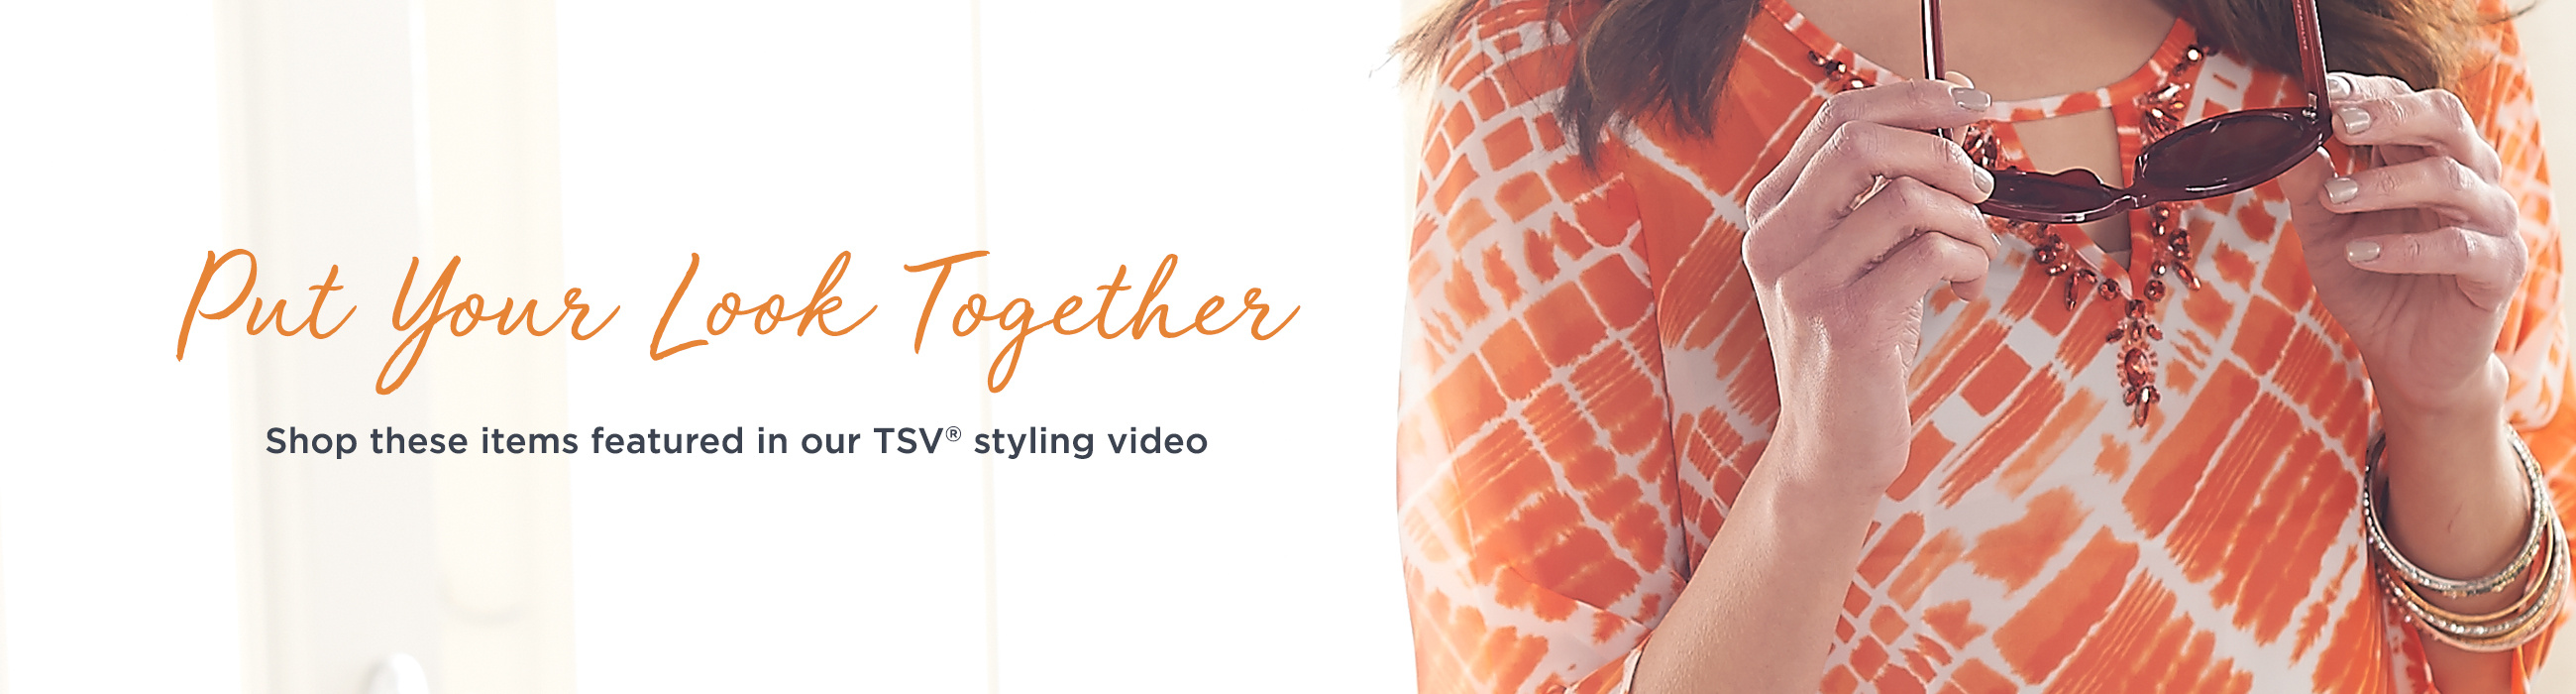 Put Your Look Together. Shop these items featured in our TSV® styling video